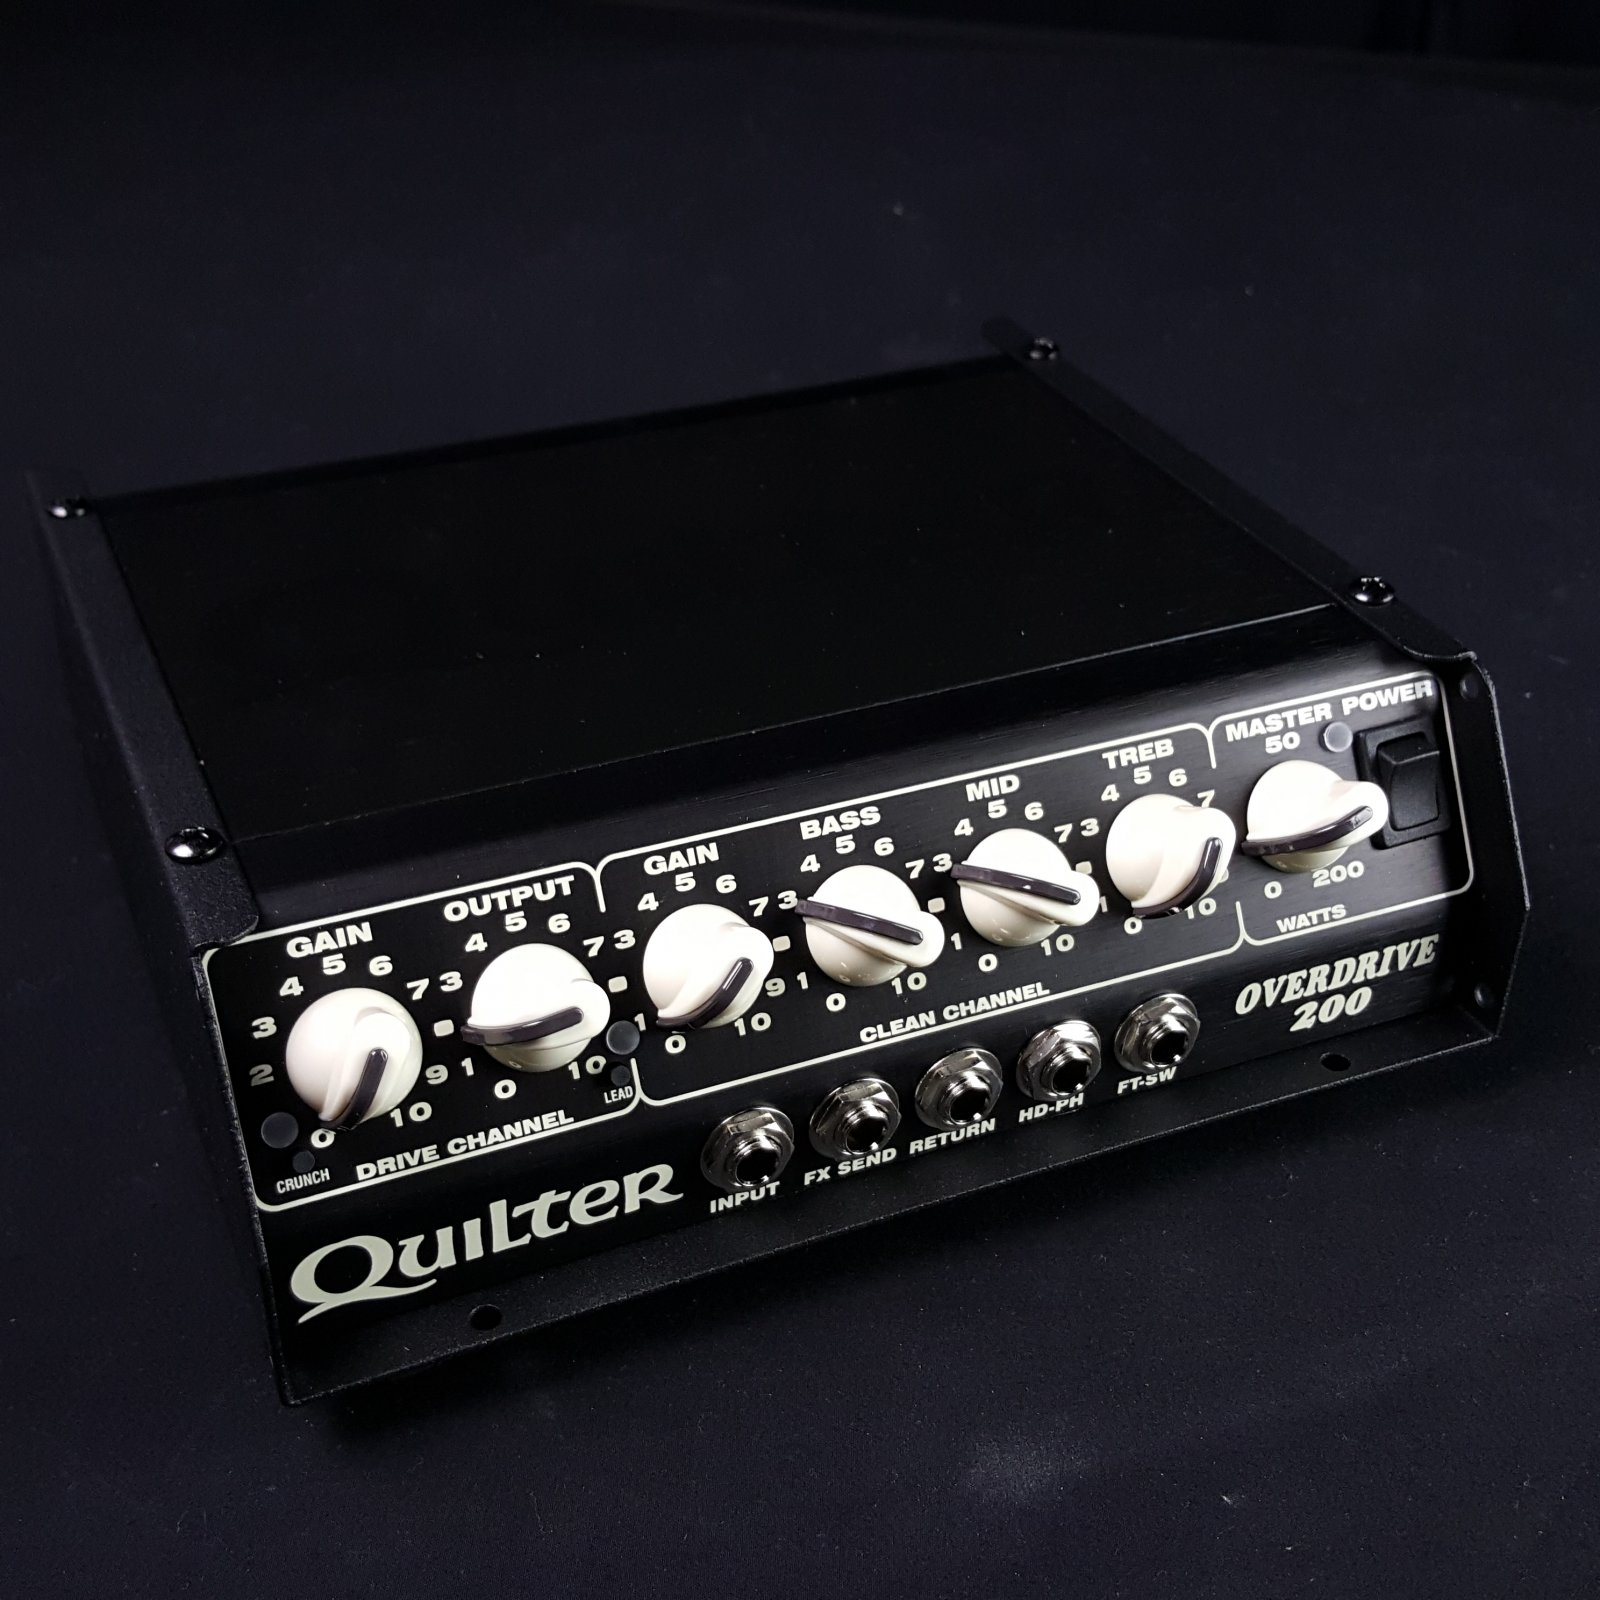 Quilter Overdrive 200 Guitar Amplifier head